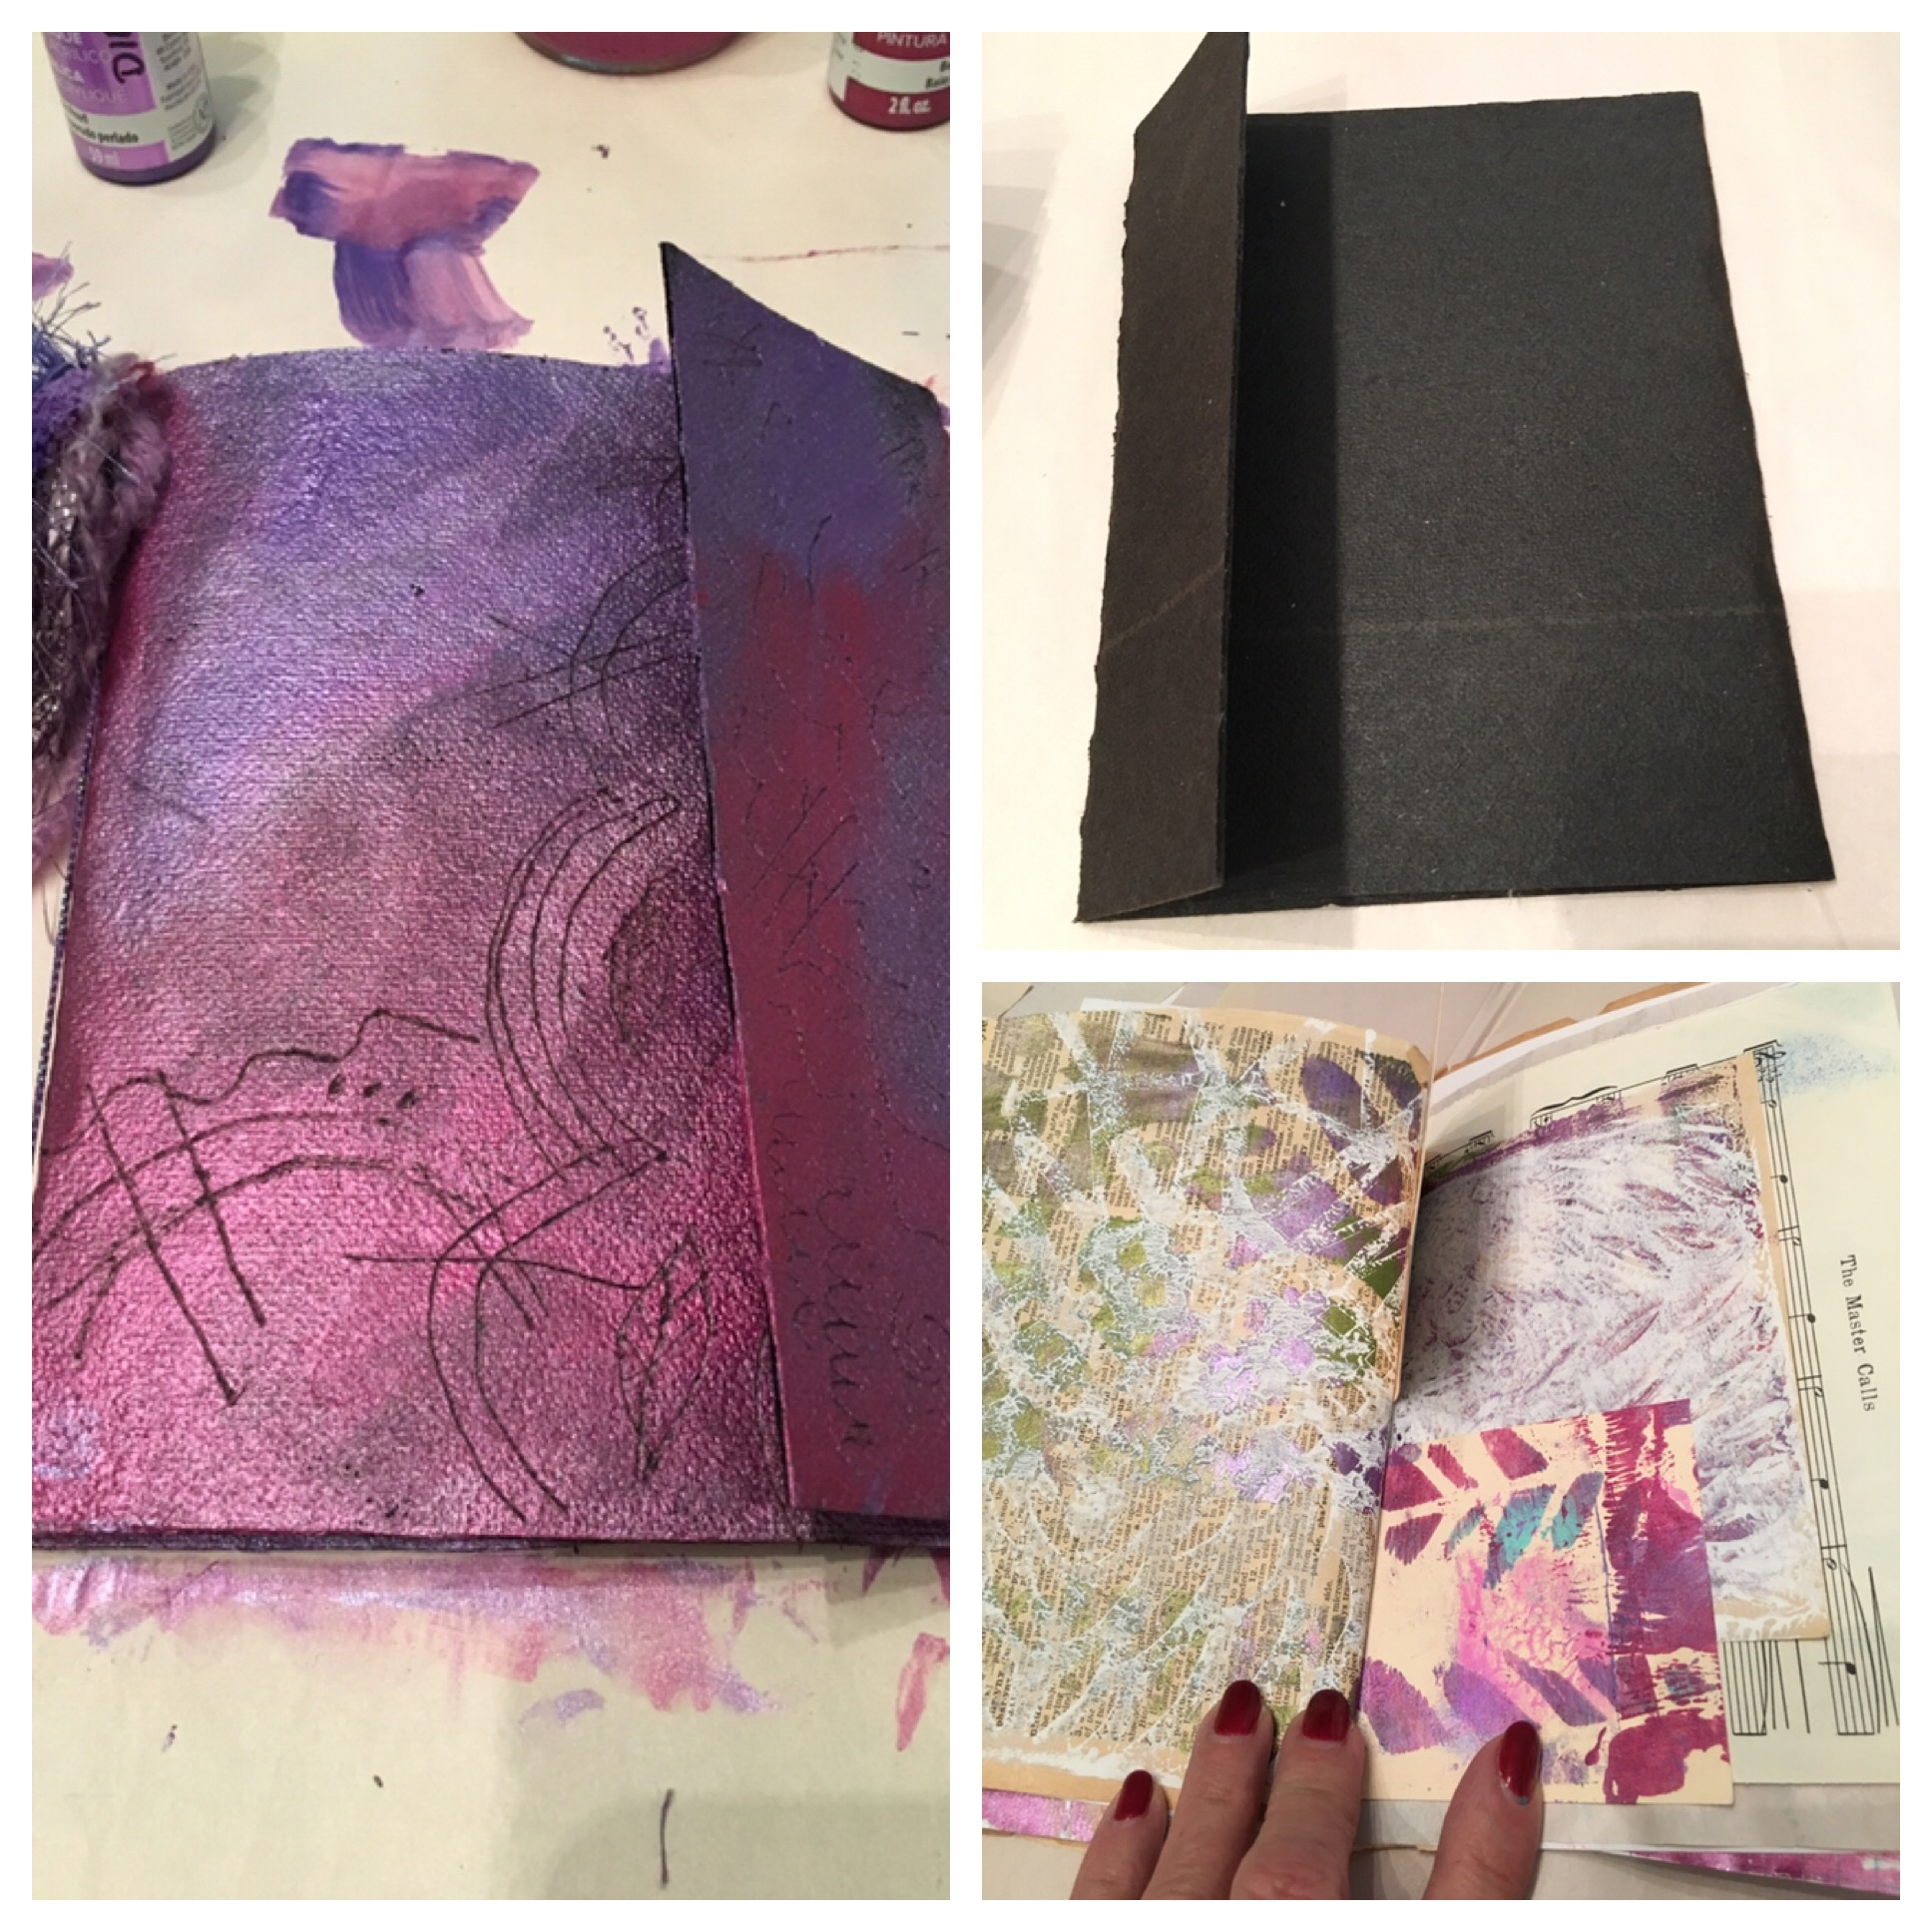 "After ""making our papers"" we then created journals. We used roofing tar paper for the journal cover and added assorted papers. We added sgraffito designs to the cover. Still thinking just how these journals might become a very special addition to a Visual Faith project."